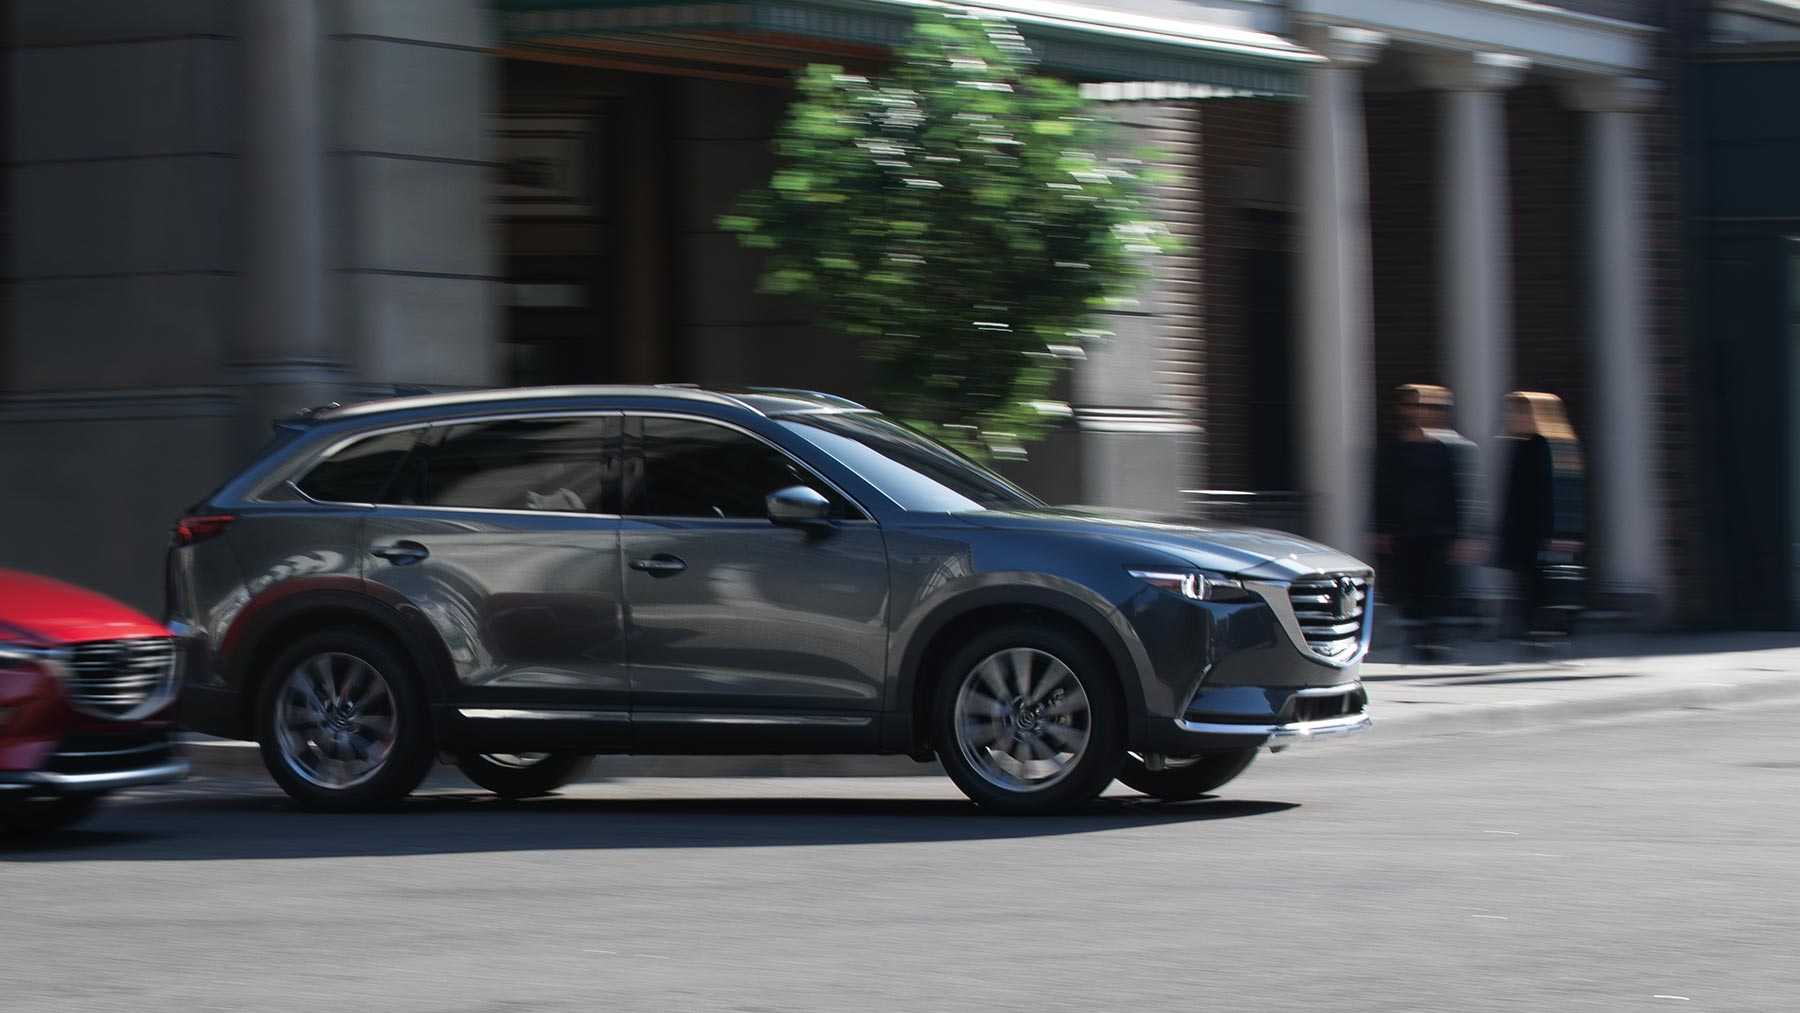 2019 Mazda CX-9 Financing near Houston, TX